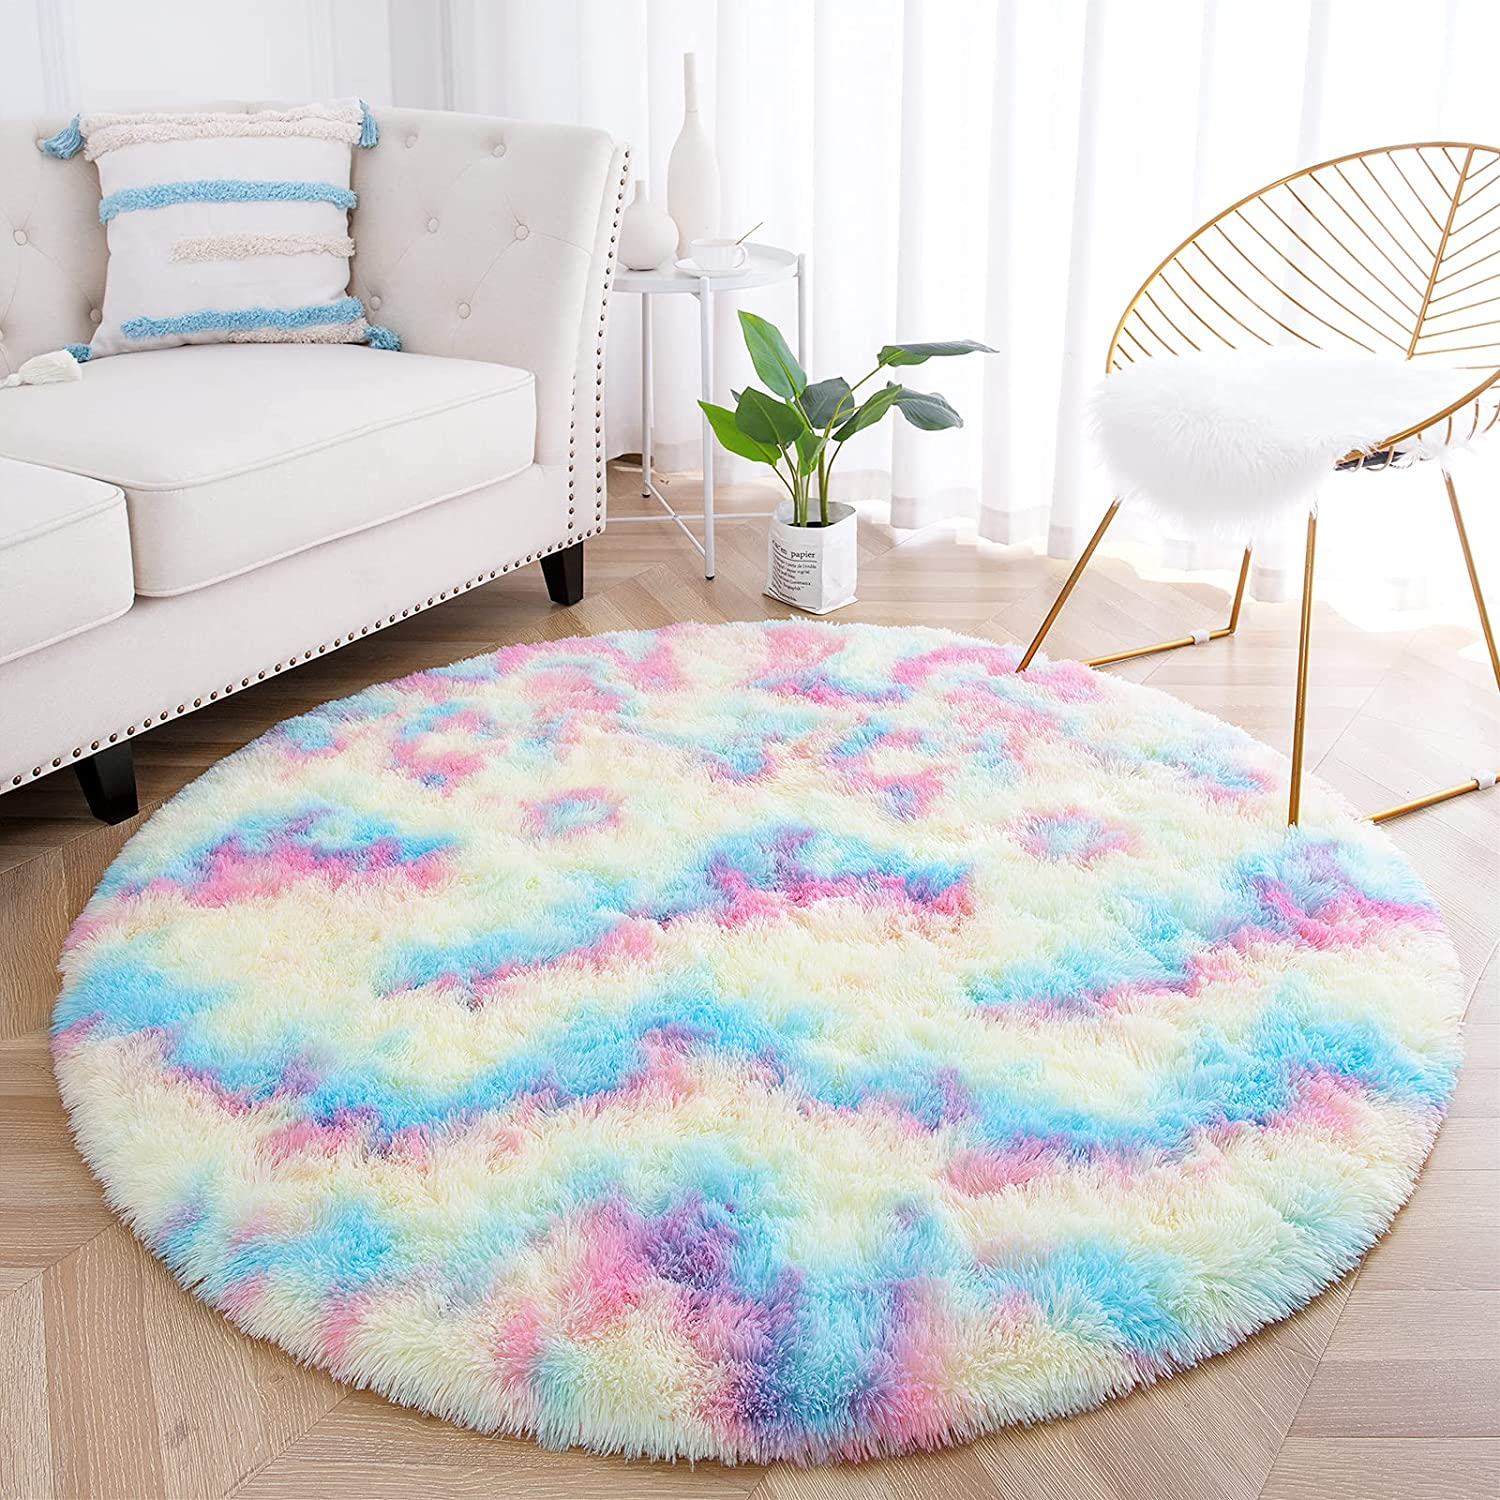 junovo Soft Round Rainbow Area Rugs for Girls Room, Fluffy Colorful Circle Rugs for Kids Bedroom, Cute Circular Rug Princess Castle Plush Shaggy Carpet for Kids Teen Baby Room Nursery Home Decor, 4ft